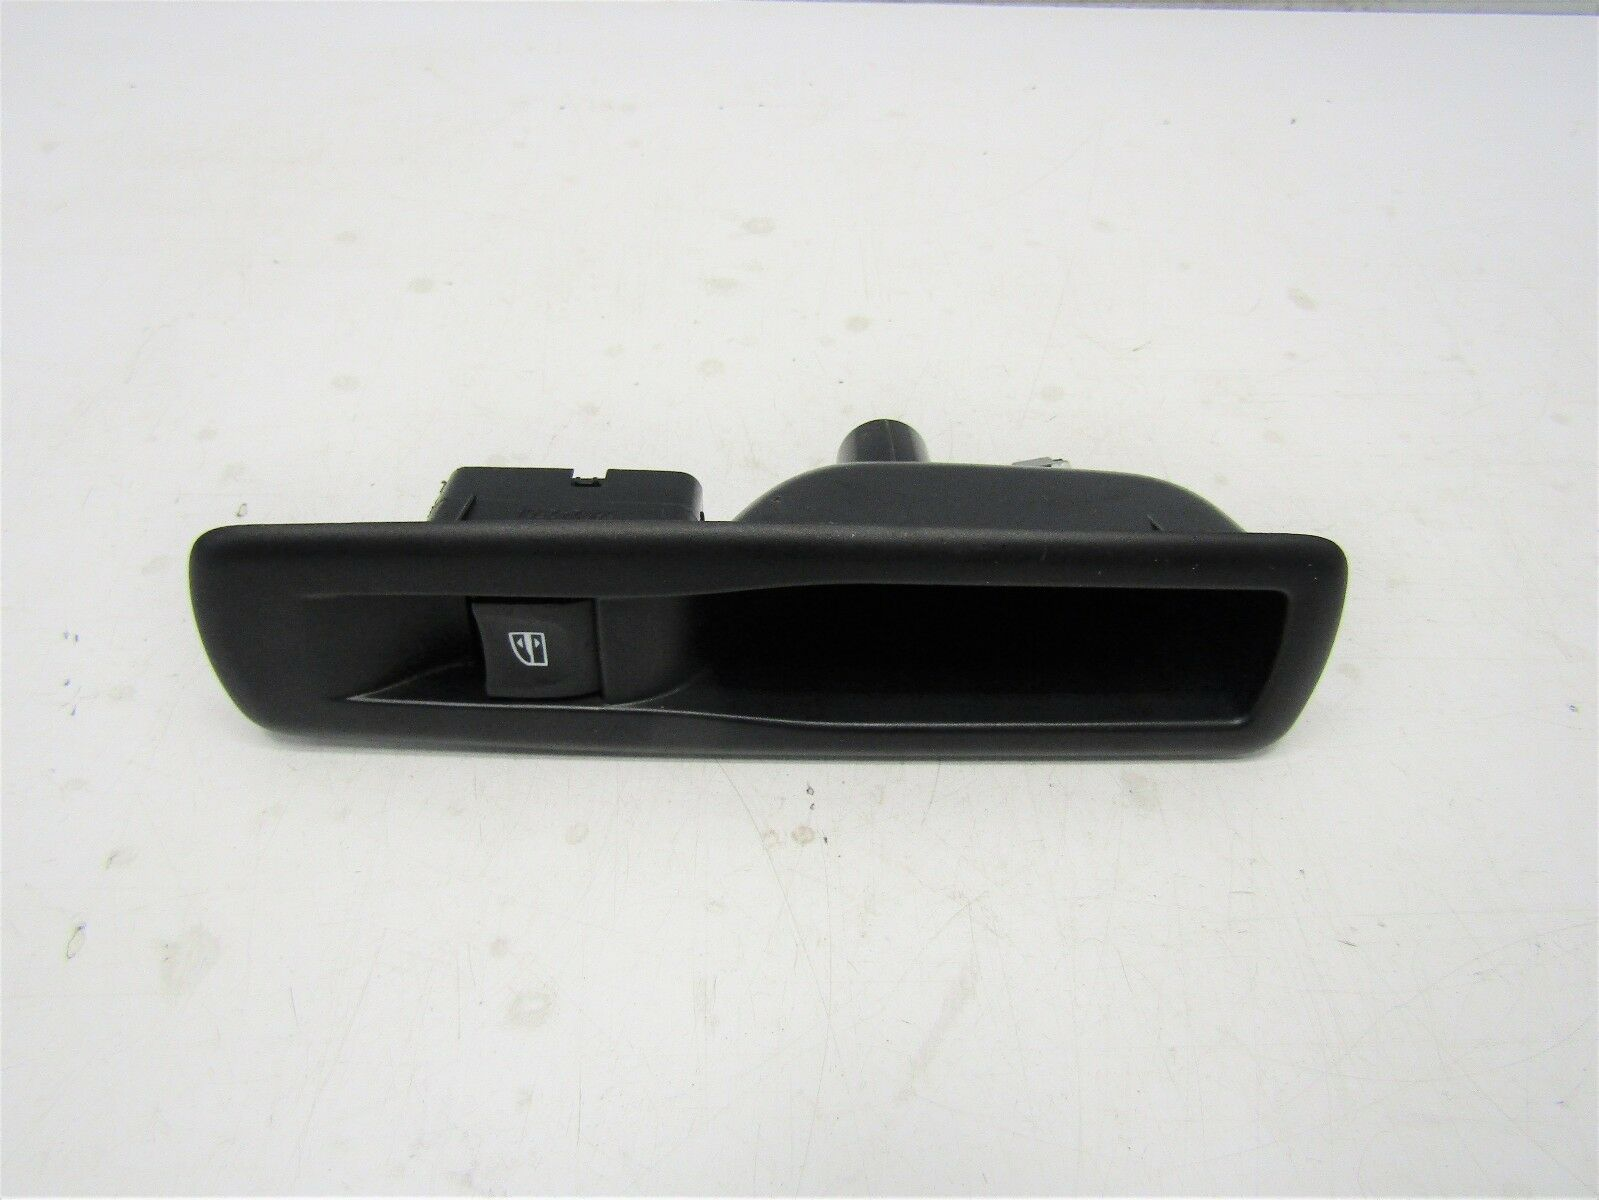 RENAULT GRAND SCENIC MK3 2009-12 OFFSIDE/RIGHT REAR DOOR WINDOW SWITCH    #8399V